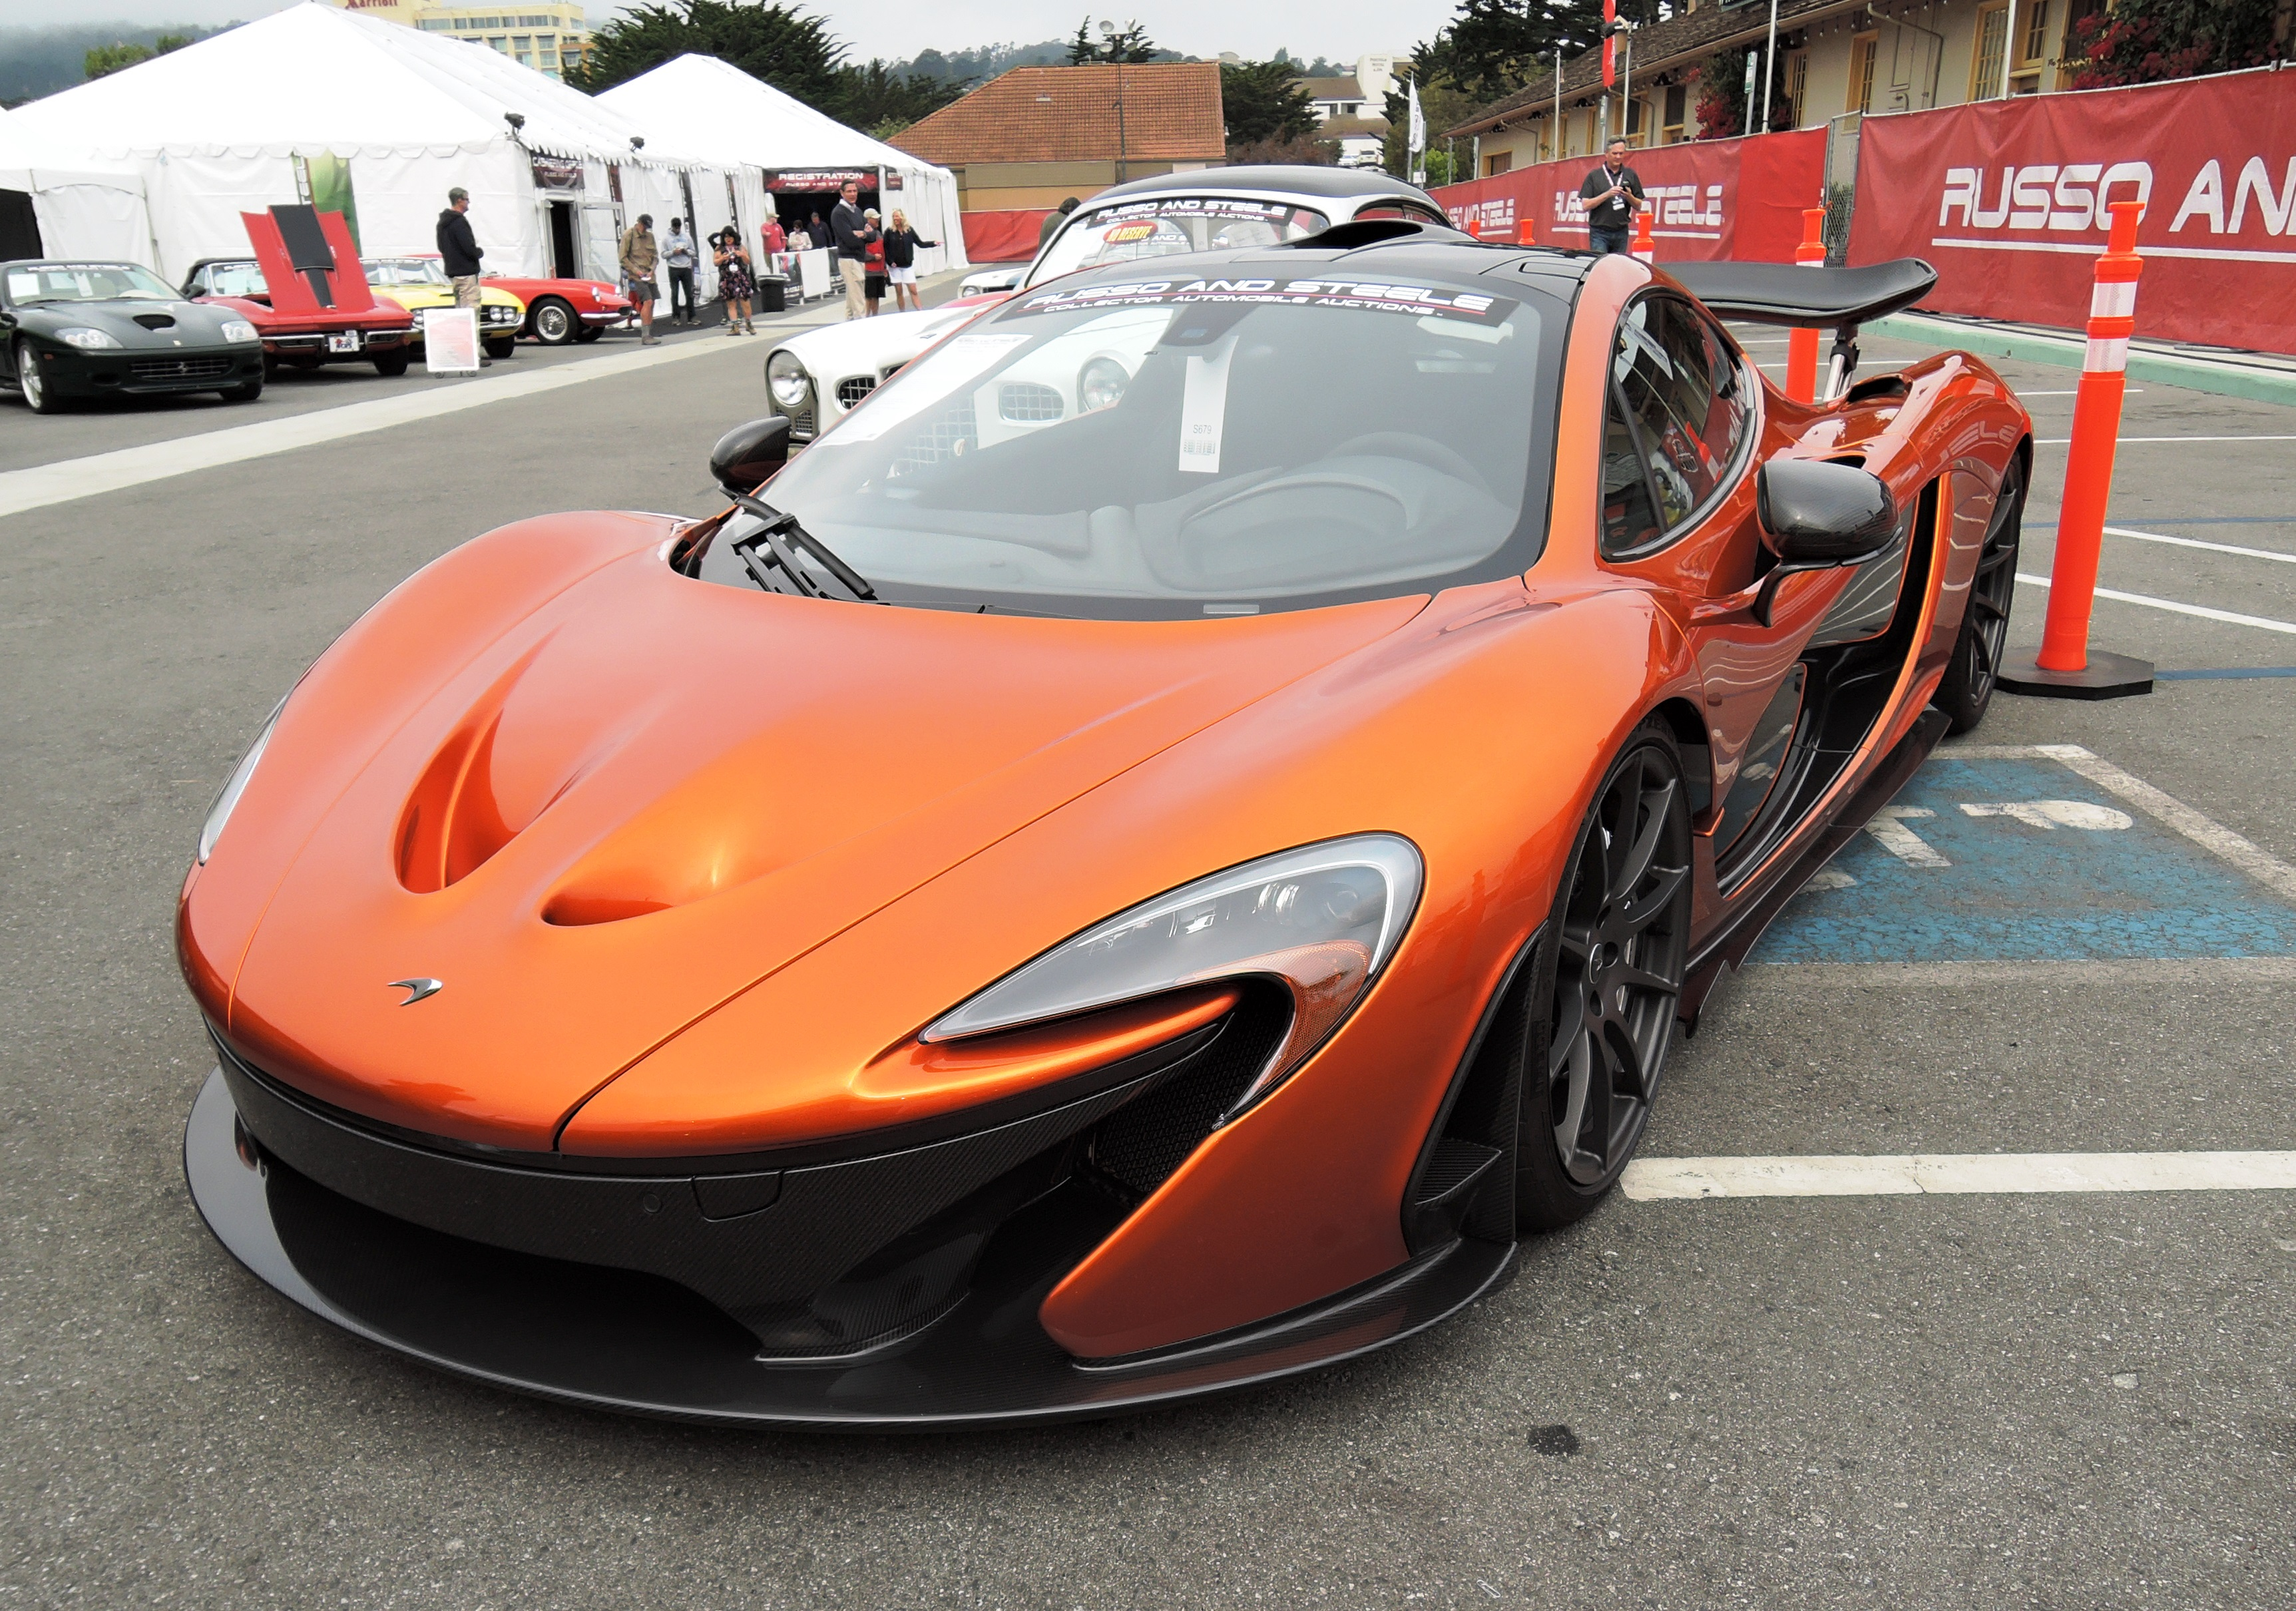 2014 McLaren P1 Coupe in Volcanic Orange Coarse - monterey auction russo & steele